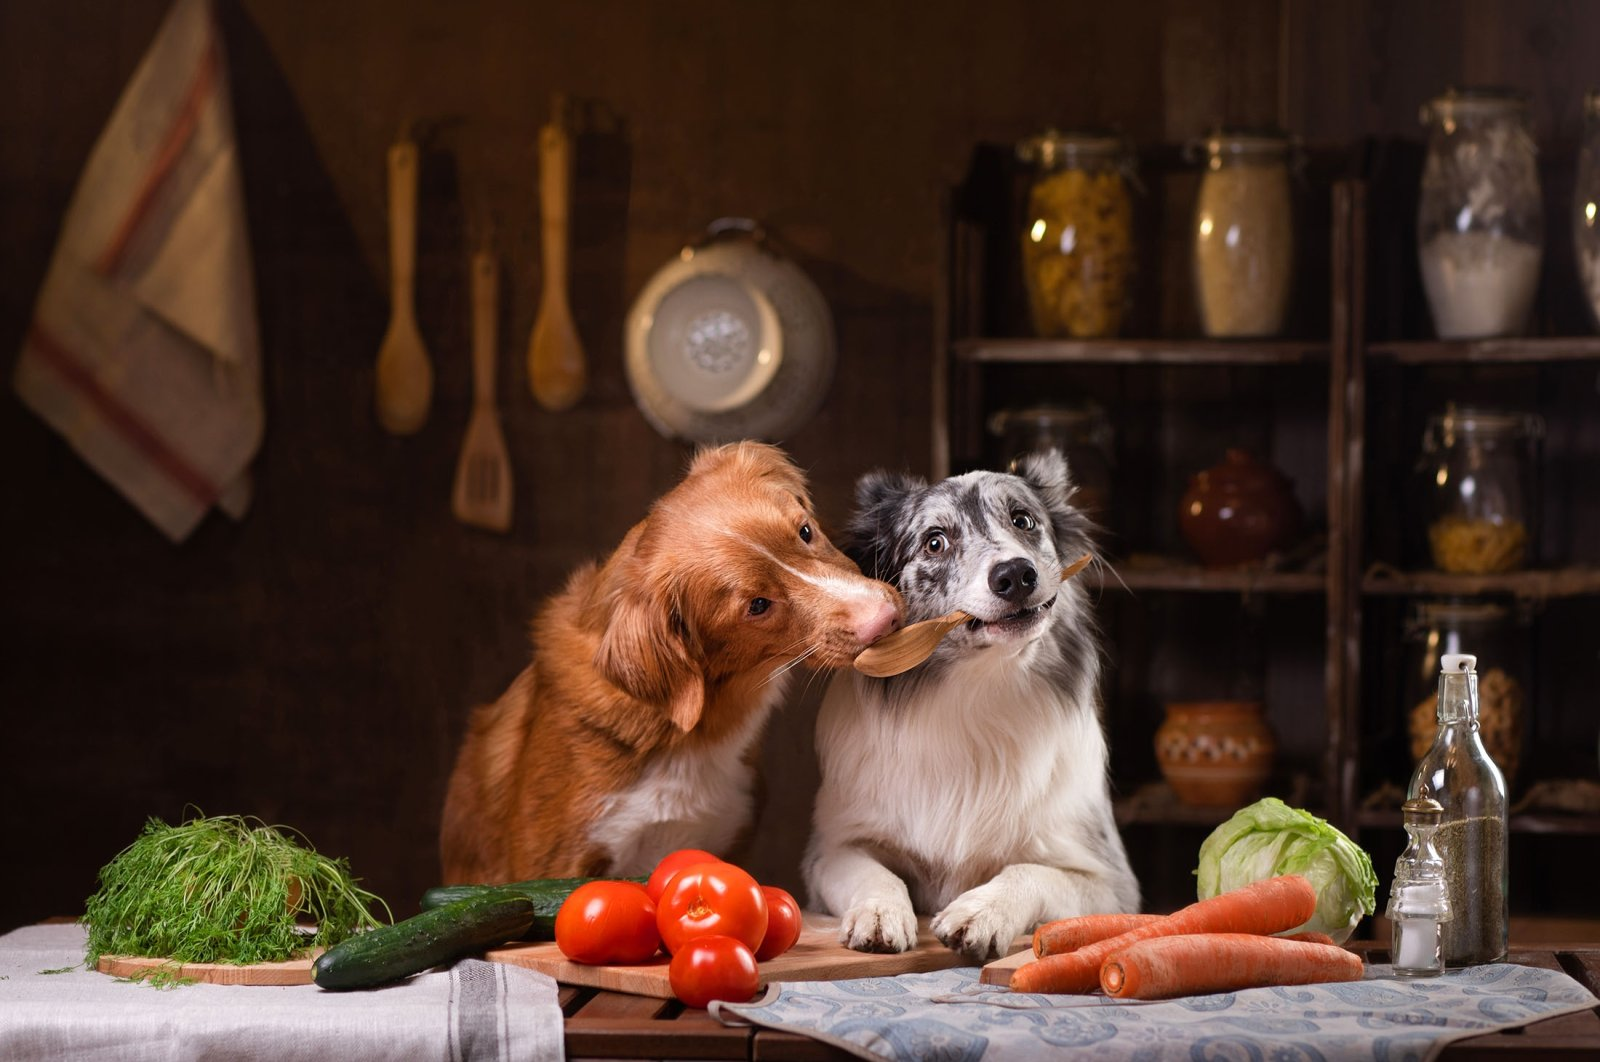 However enticing some foods may seem to canines, there are many that can be dangerous to their health. (Shutterstock Photo)